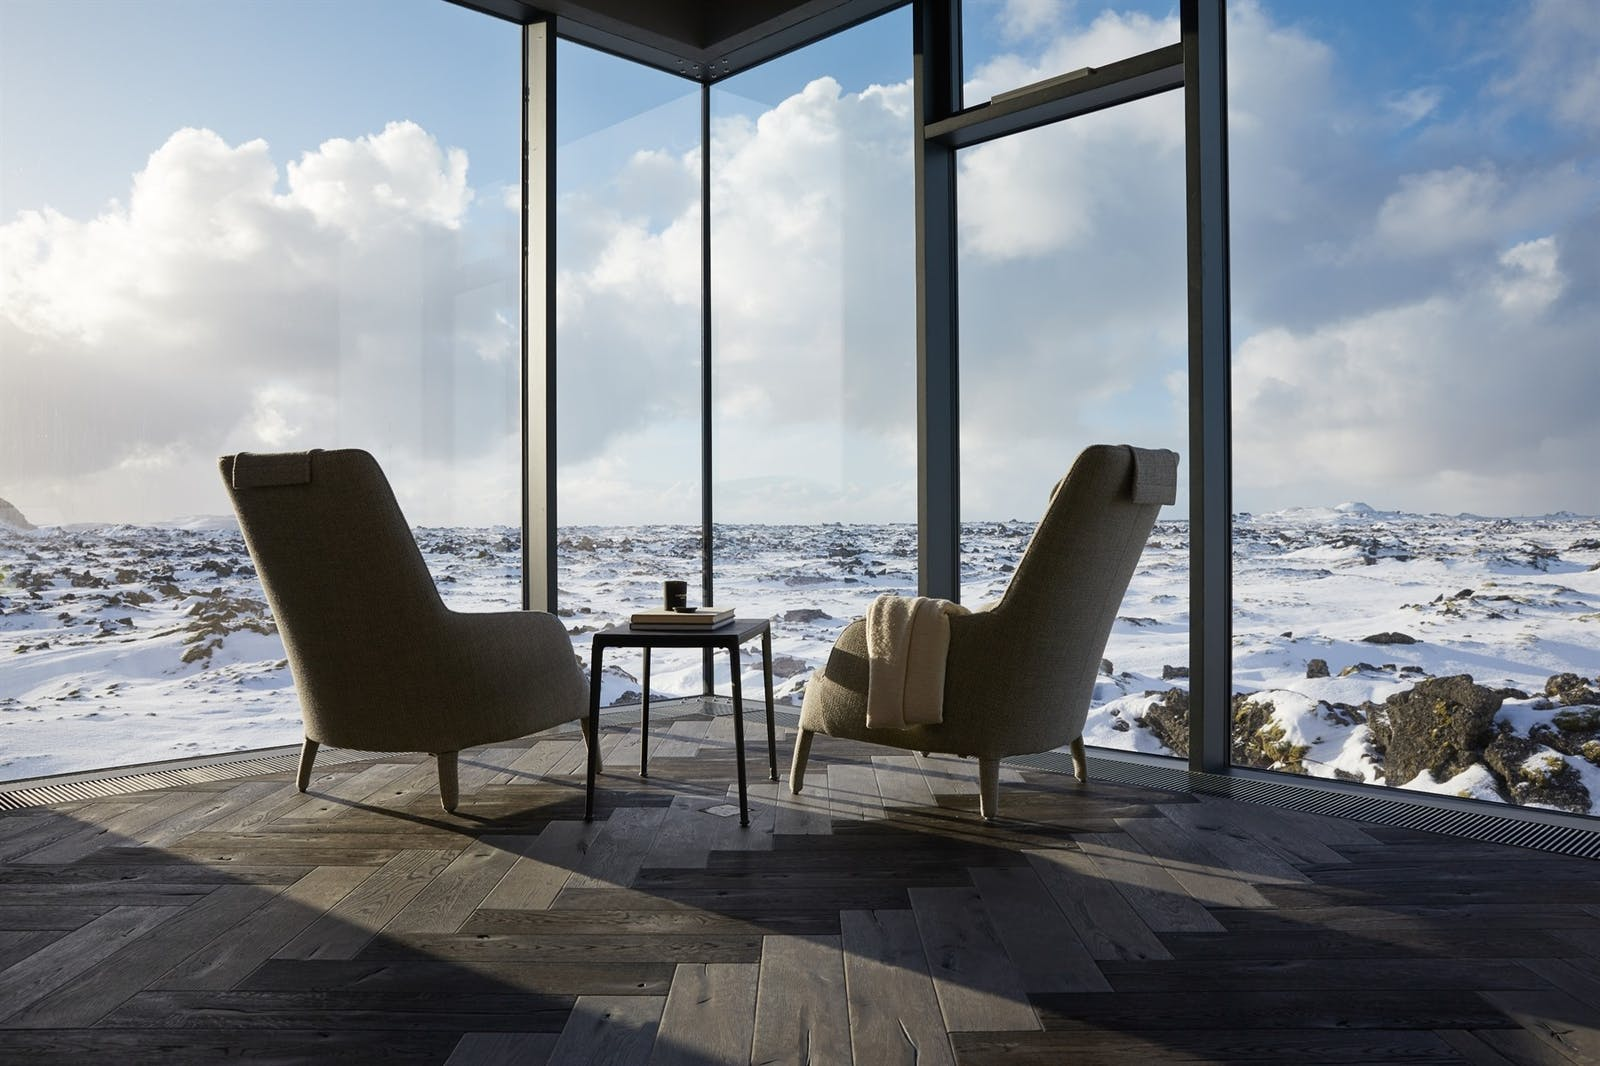 Seating area, Retreat Hotel, Iceland